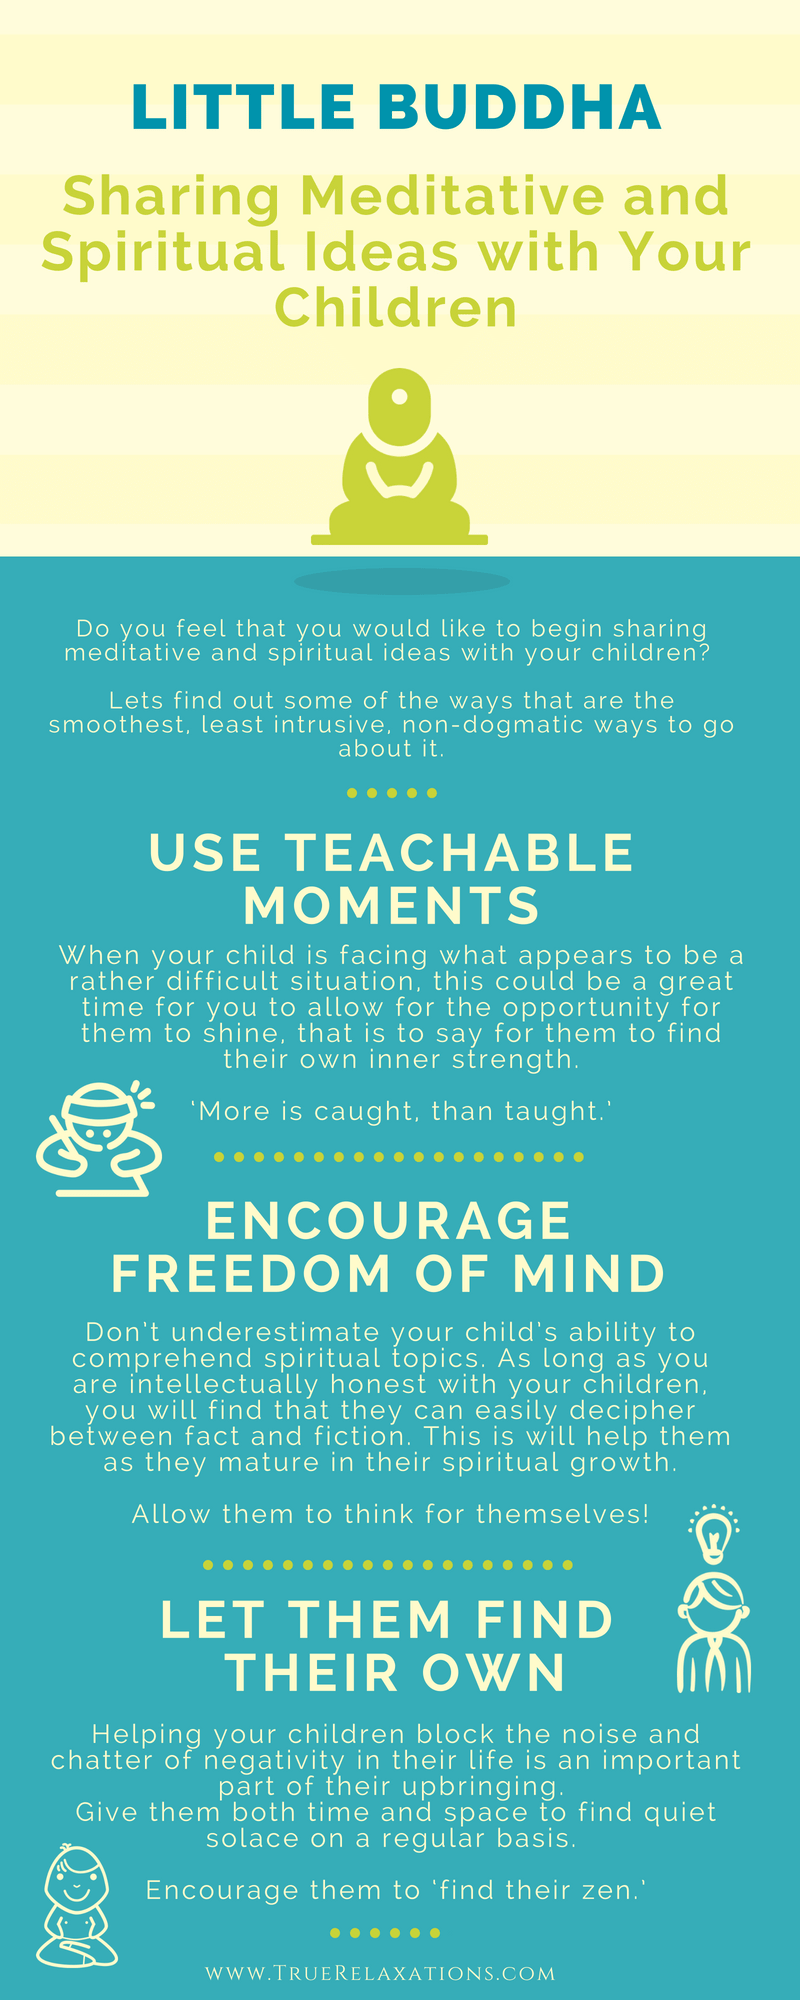 Little Buddha: Sharing Meditative and Spiritual Ideas with Your Children